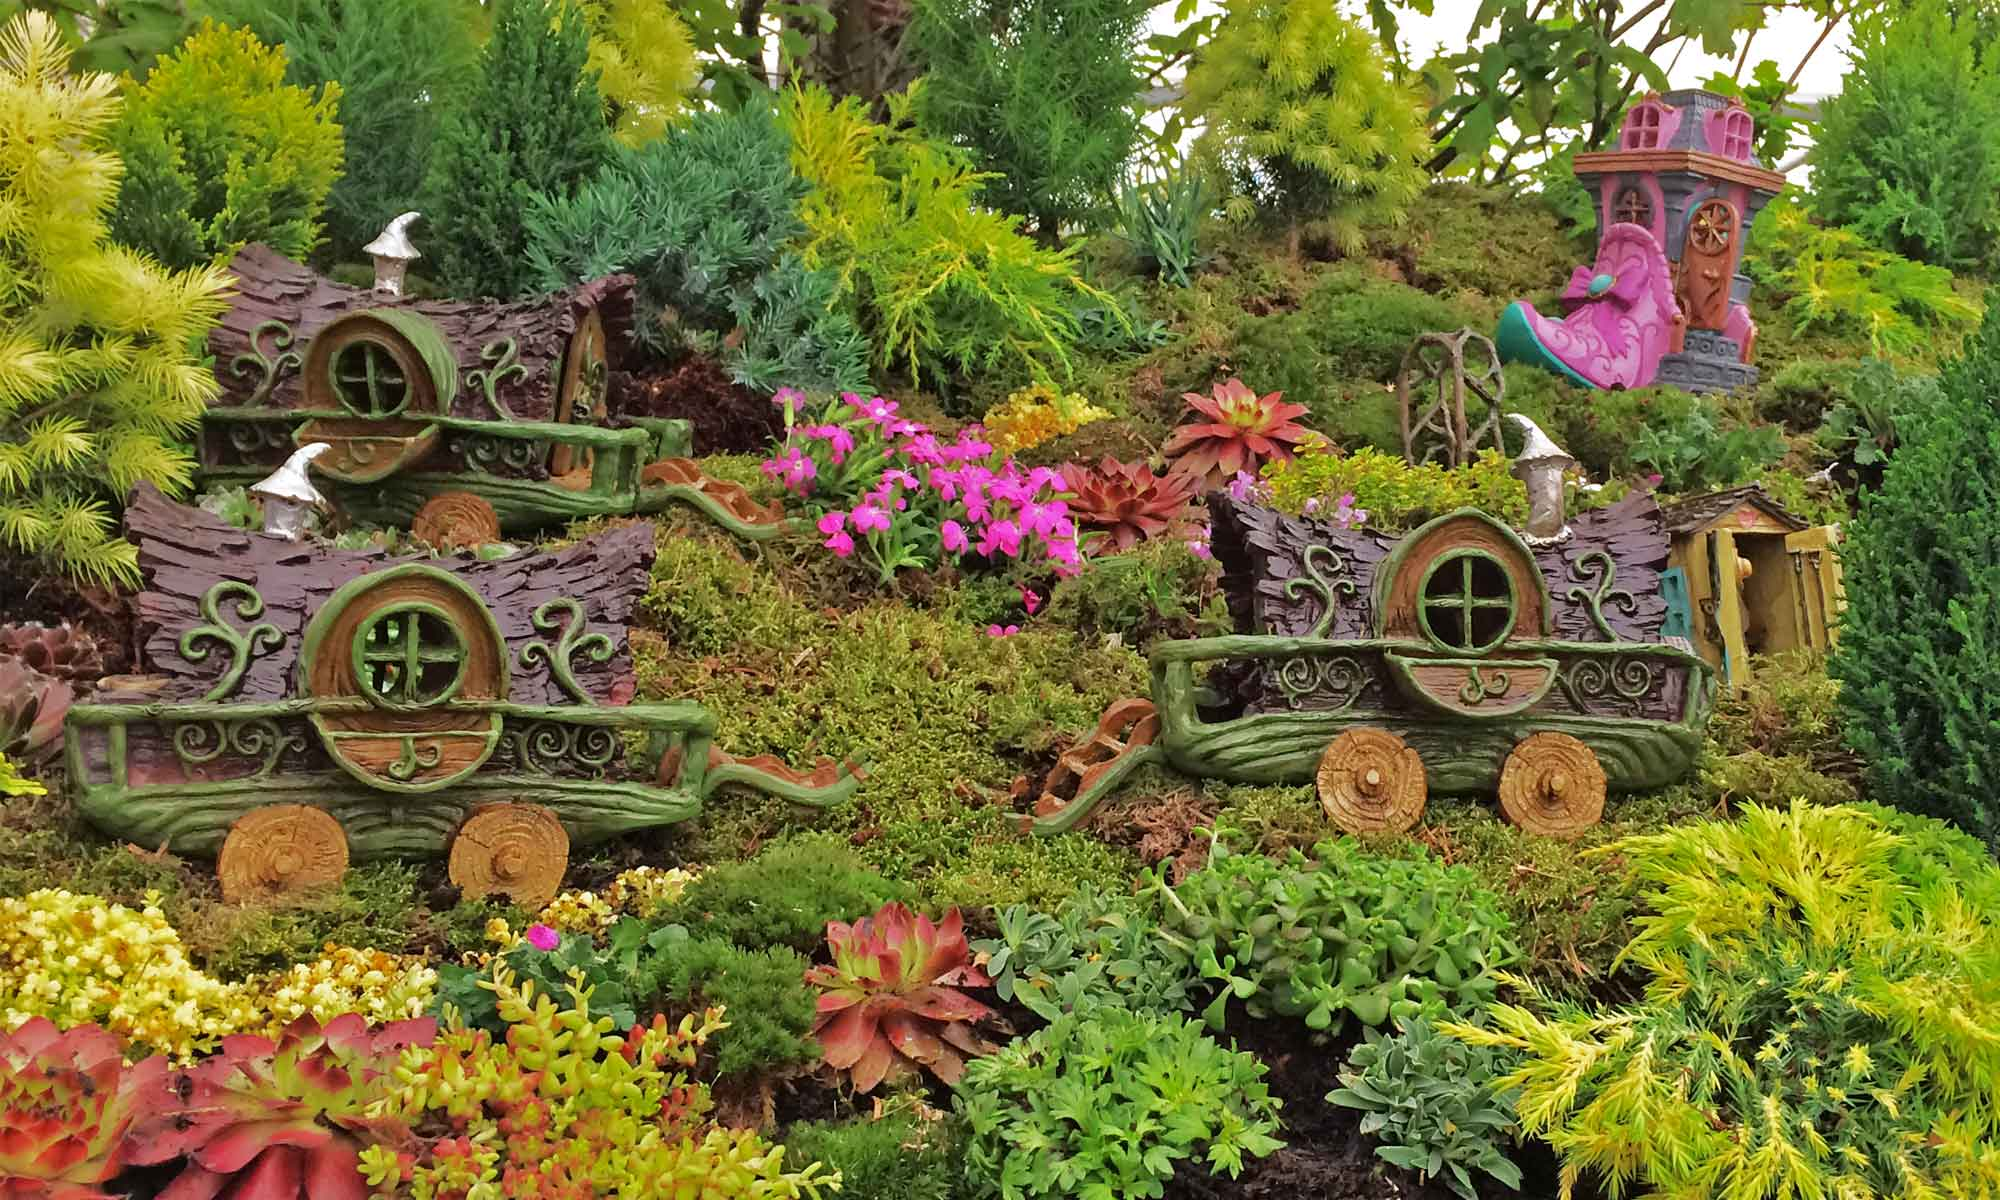 The Fiddlehead Fairy Garden